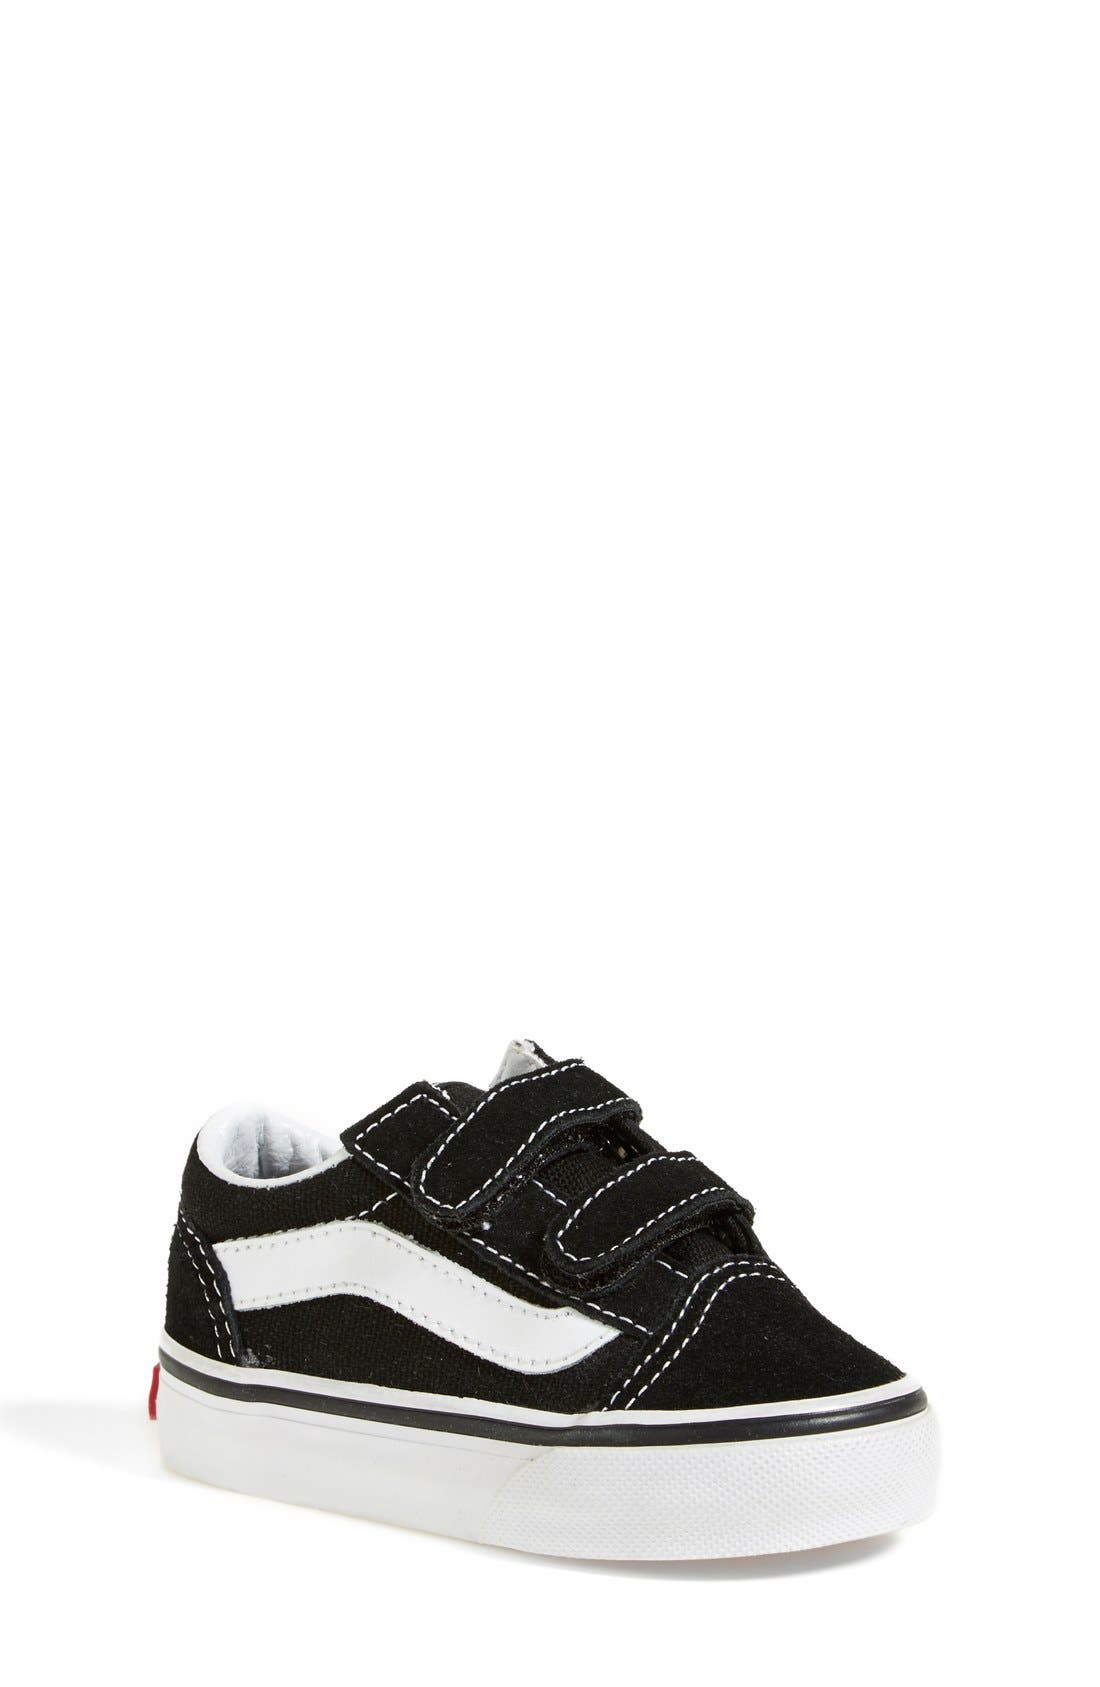 'Old Skool V' Sneaker,                         Main,                         color, BLACK/ TRUE WHITE